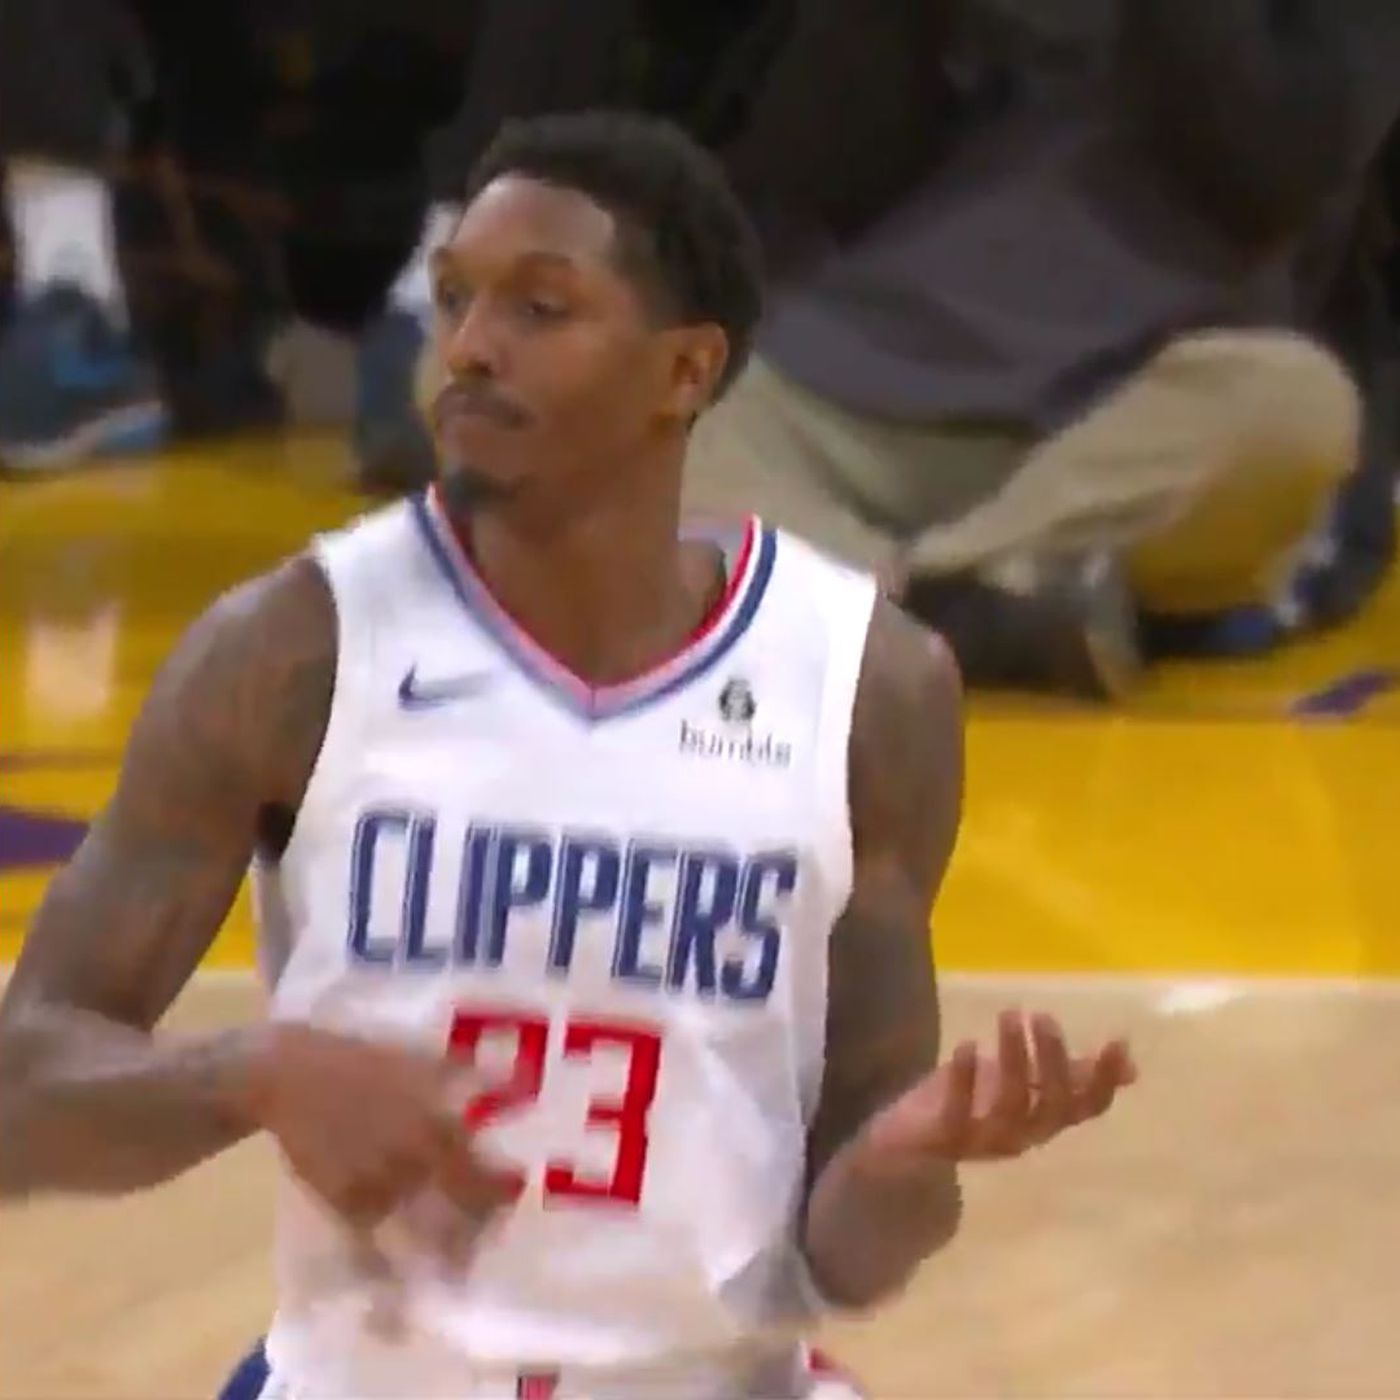 615716389b4 Why Lou Williams strumming an invisible guitar was so cold - SBNation.com